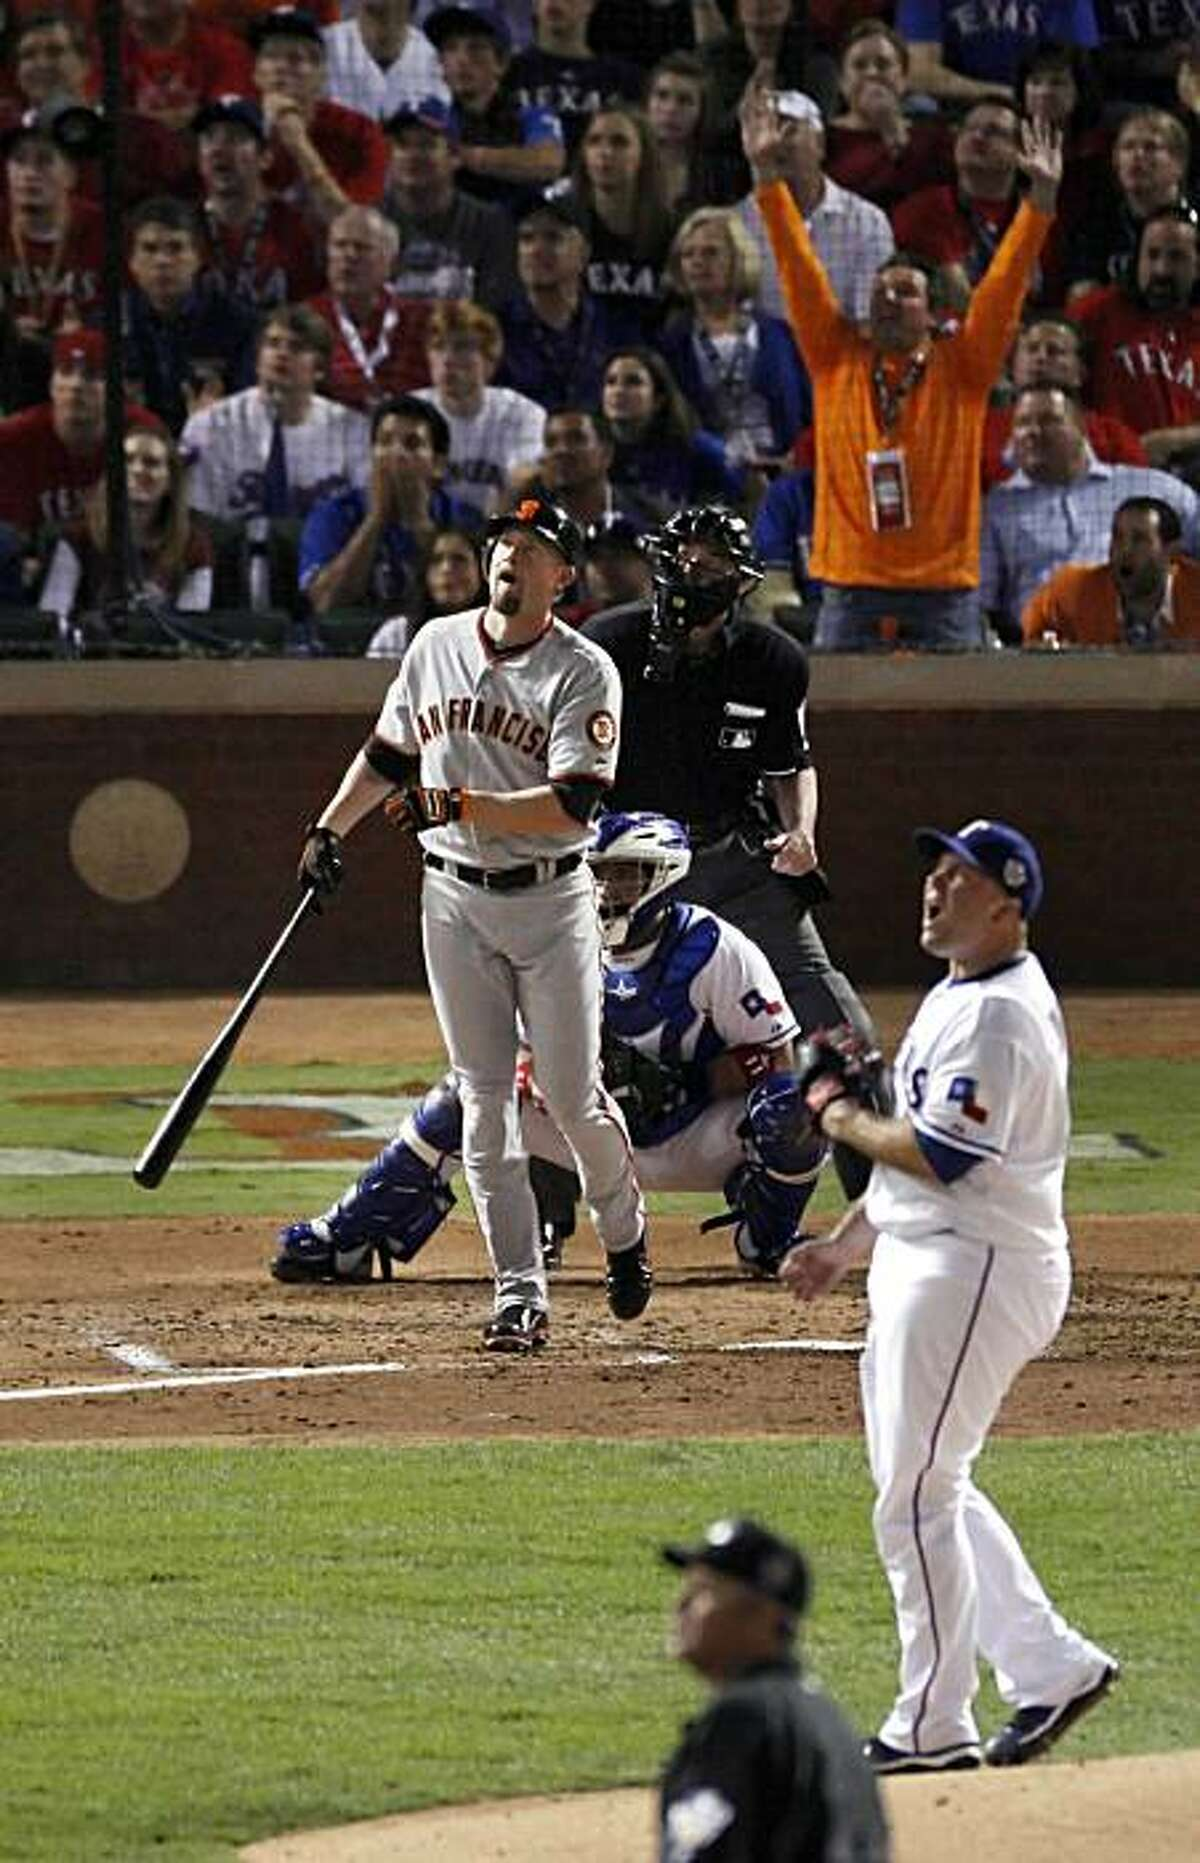 San Francisco Giants first baseman Aubrey Huff (17) watches his two run homer in the third inning during game 4 of the 2010 World Series between the San Francisco Giants and the Texas Rangers on Sunday, Oct. 31, 2010 in Arlington, Tx.San Francisco GiantsSan Francisco Giants first baseman Aubrey Huff (17) watches his two run homer in the third inning during game 4 of the 2010 World Series between the San Francisco Giants and the Texas Rangers on Sunday, Oct. 31, 2010 in Arlington, Tx. Ran on: 11-01-2010 Aubrey Huff and Rangers pitcher Tommy Hunter watch Huff's drive soar high and deep beyond the right-field wall for a two-run homer in the third inning. Ran on: 11-01-2010 Aubrey Huff and Rangers pitcher Tommy Hunter watch Huff's drive soar high and deep beyond the right-field wall for a two-run homer in the third inning. MANDATORY CREDIT FOR PHOTOG AND SAN FRANCISCO CHRONICLE/NO SALES-MAGS OUT-INTERNET OUT-TV OUT